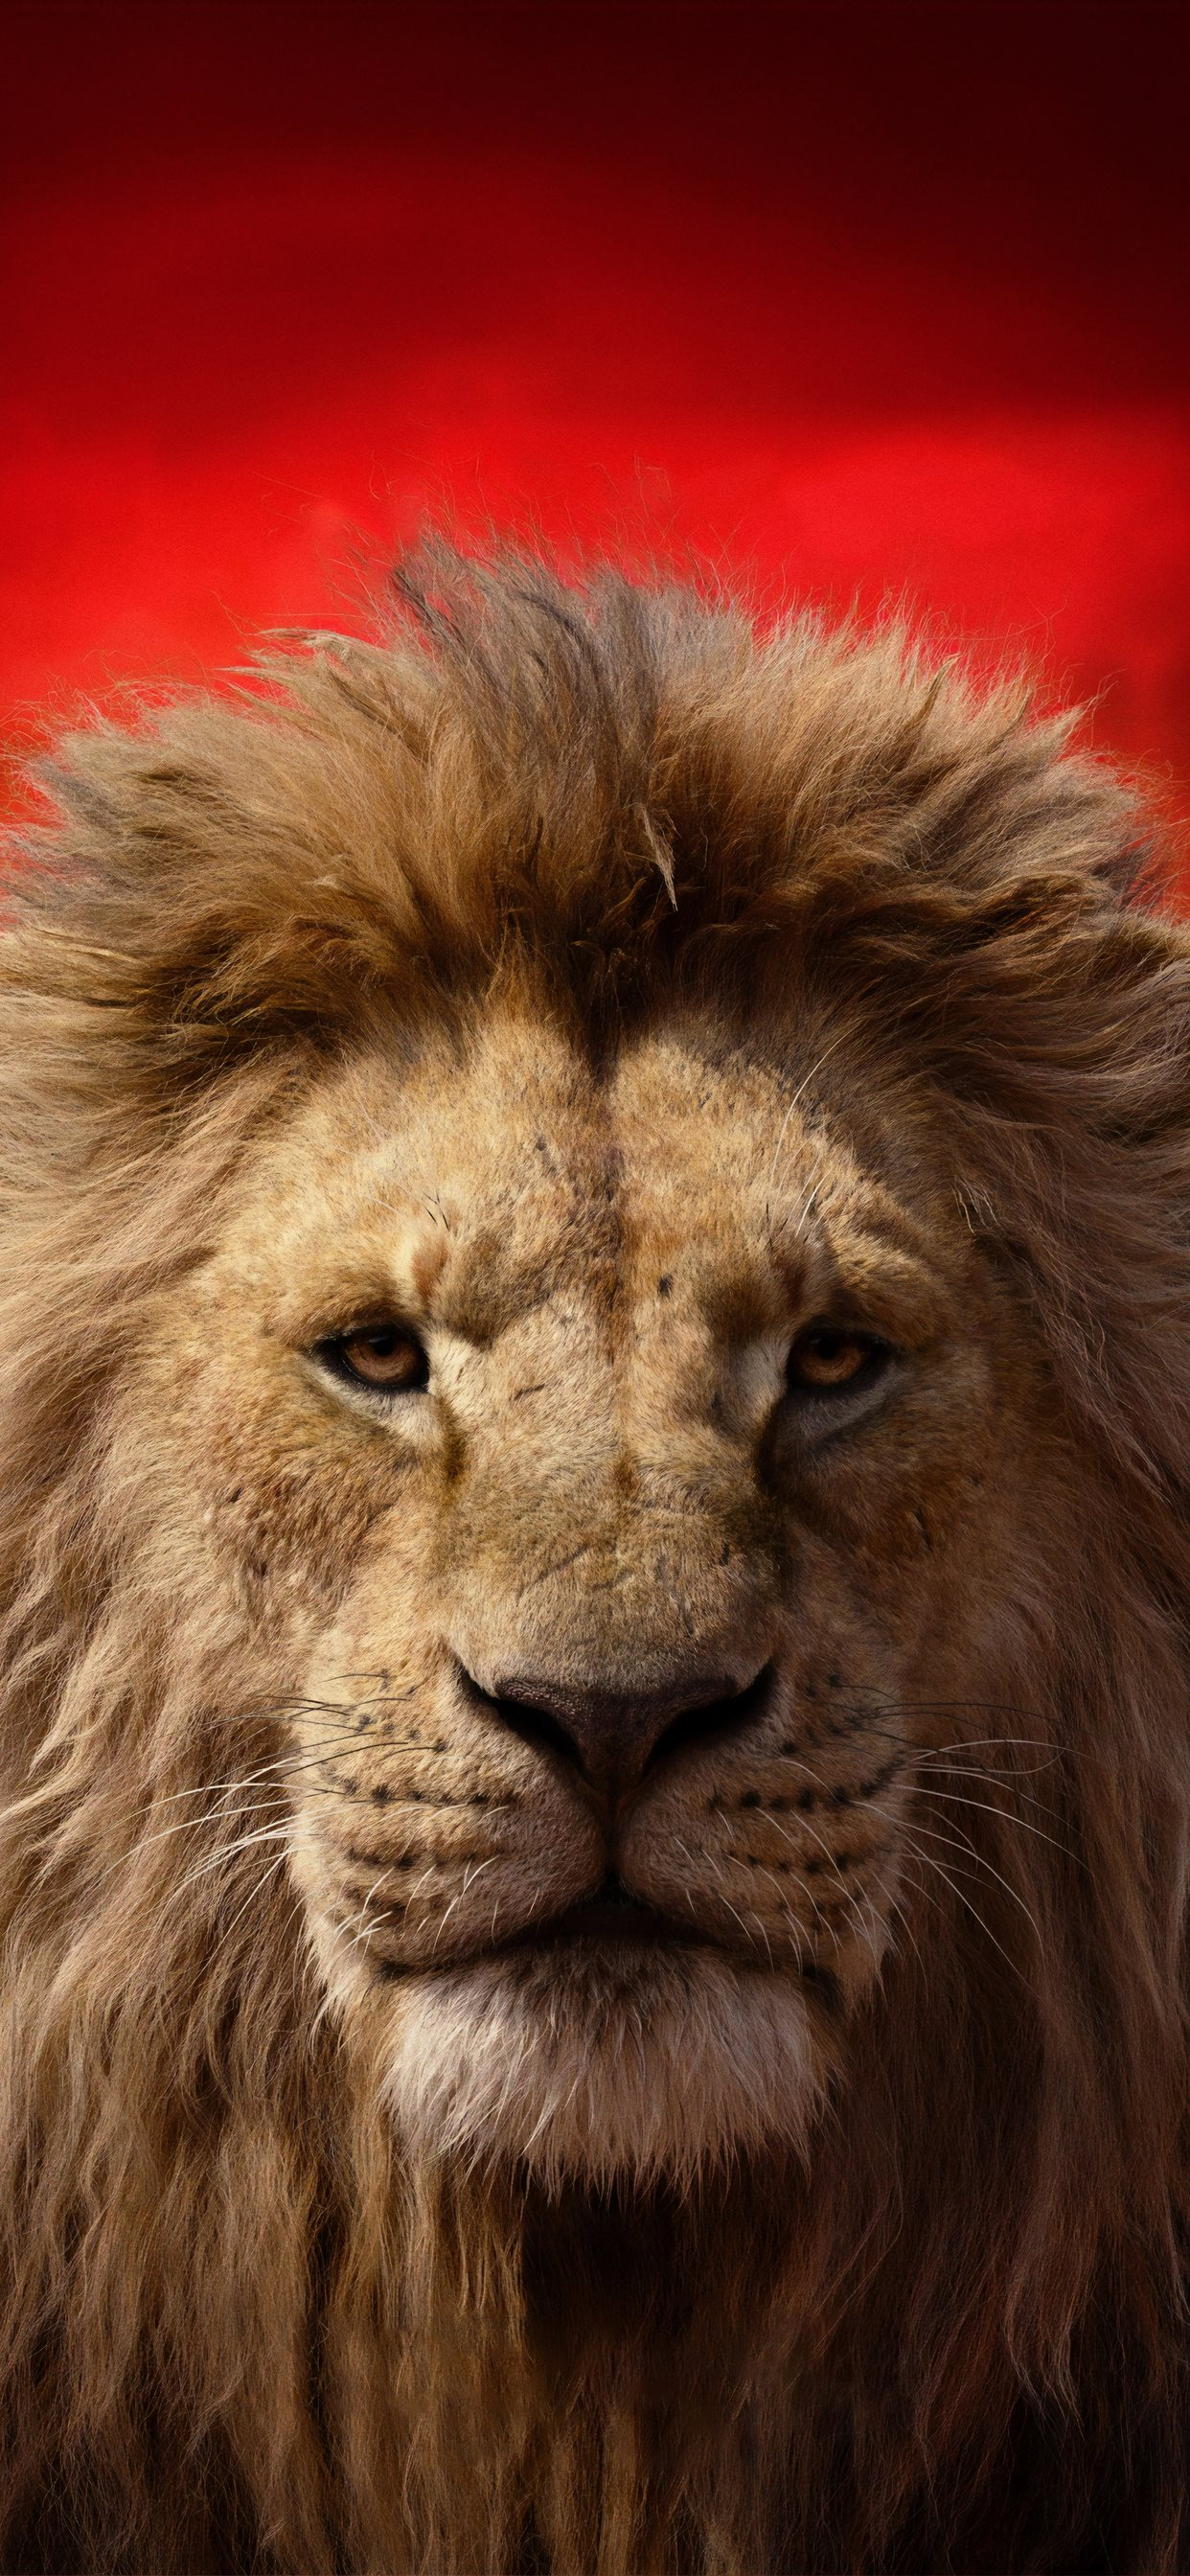 James Earl Jones As Mufasa The Lion King 2019 4k Iphone X Wallpapers Free Download